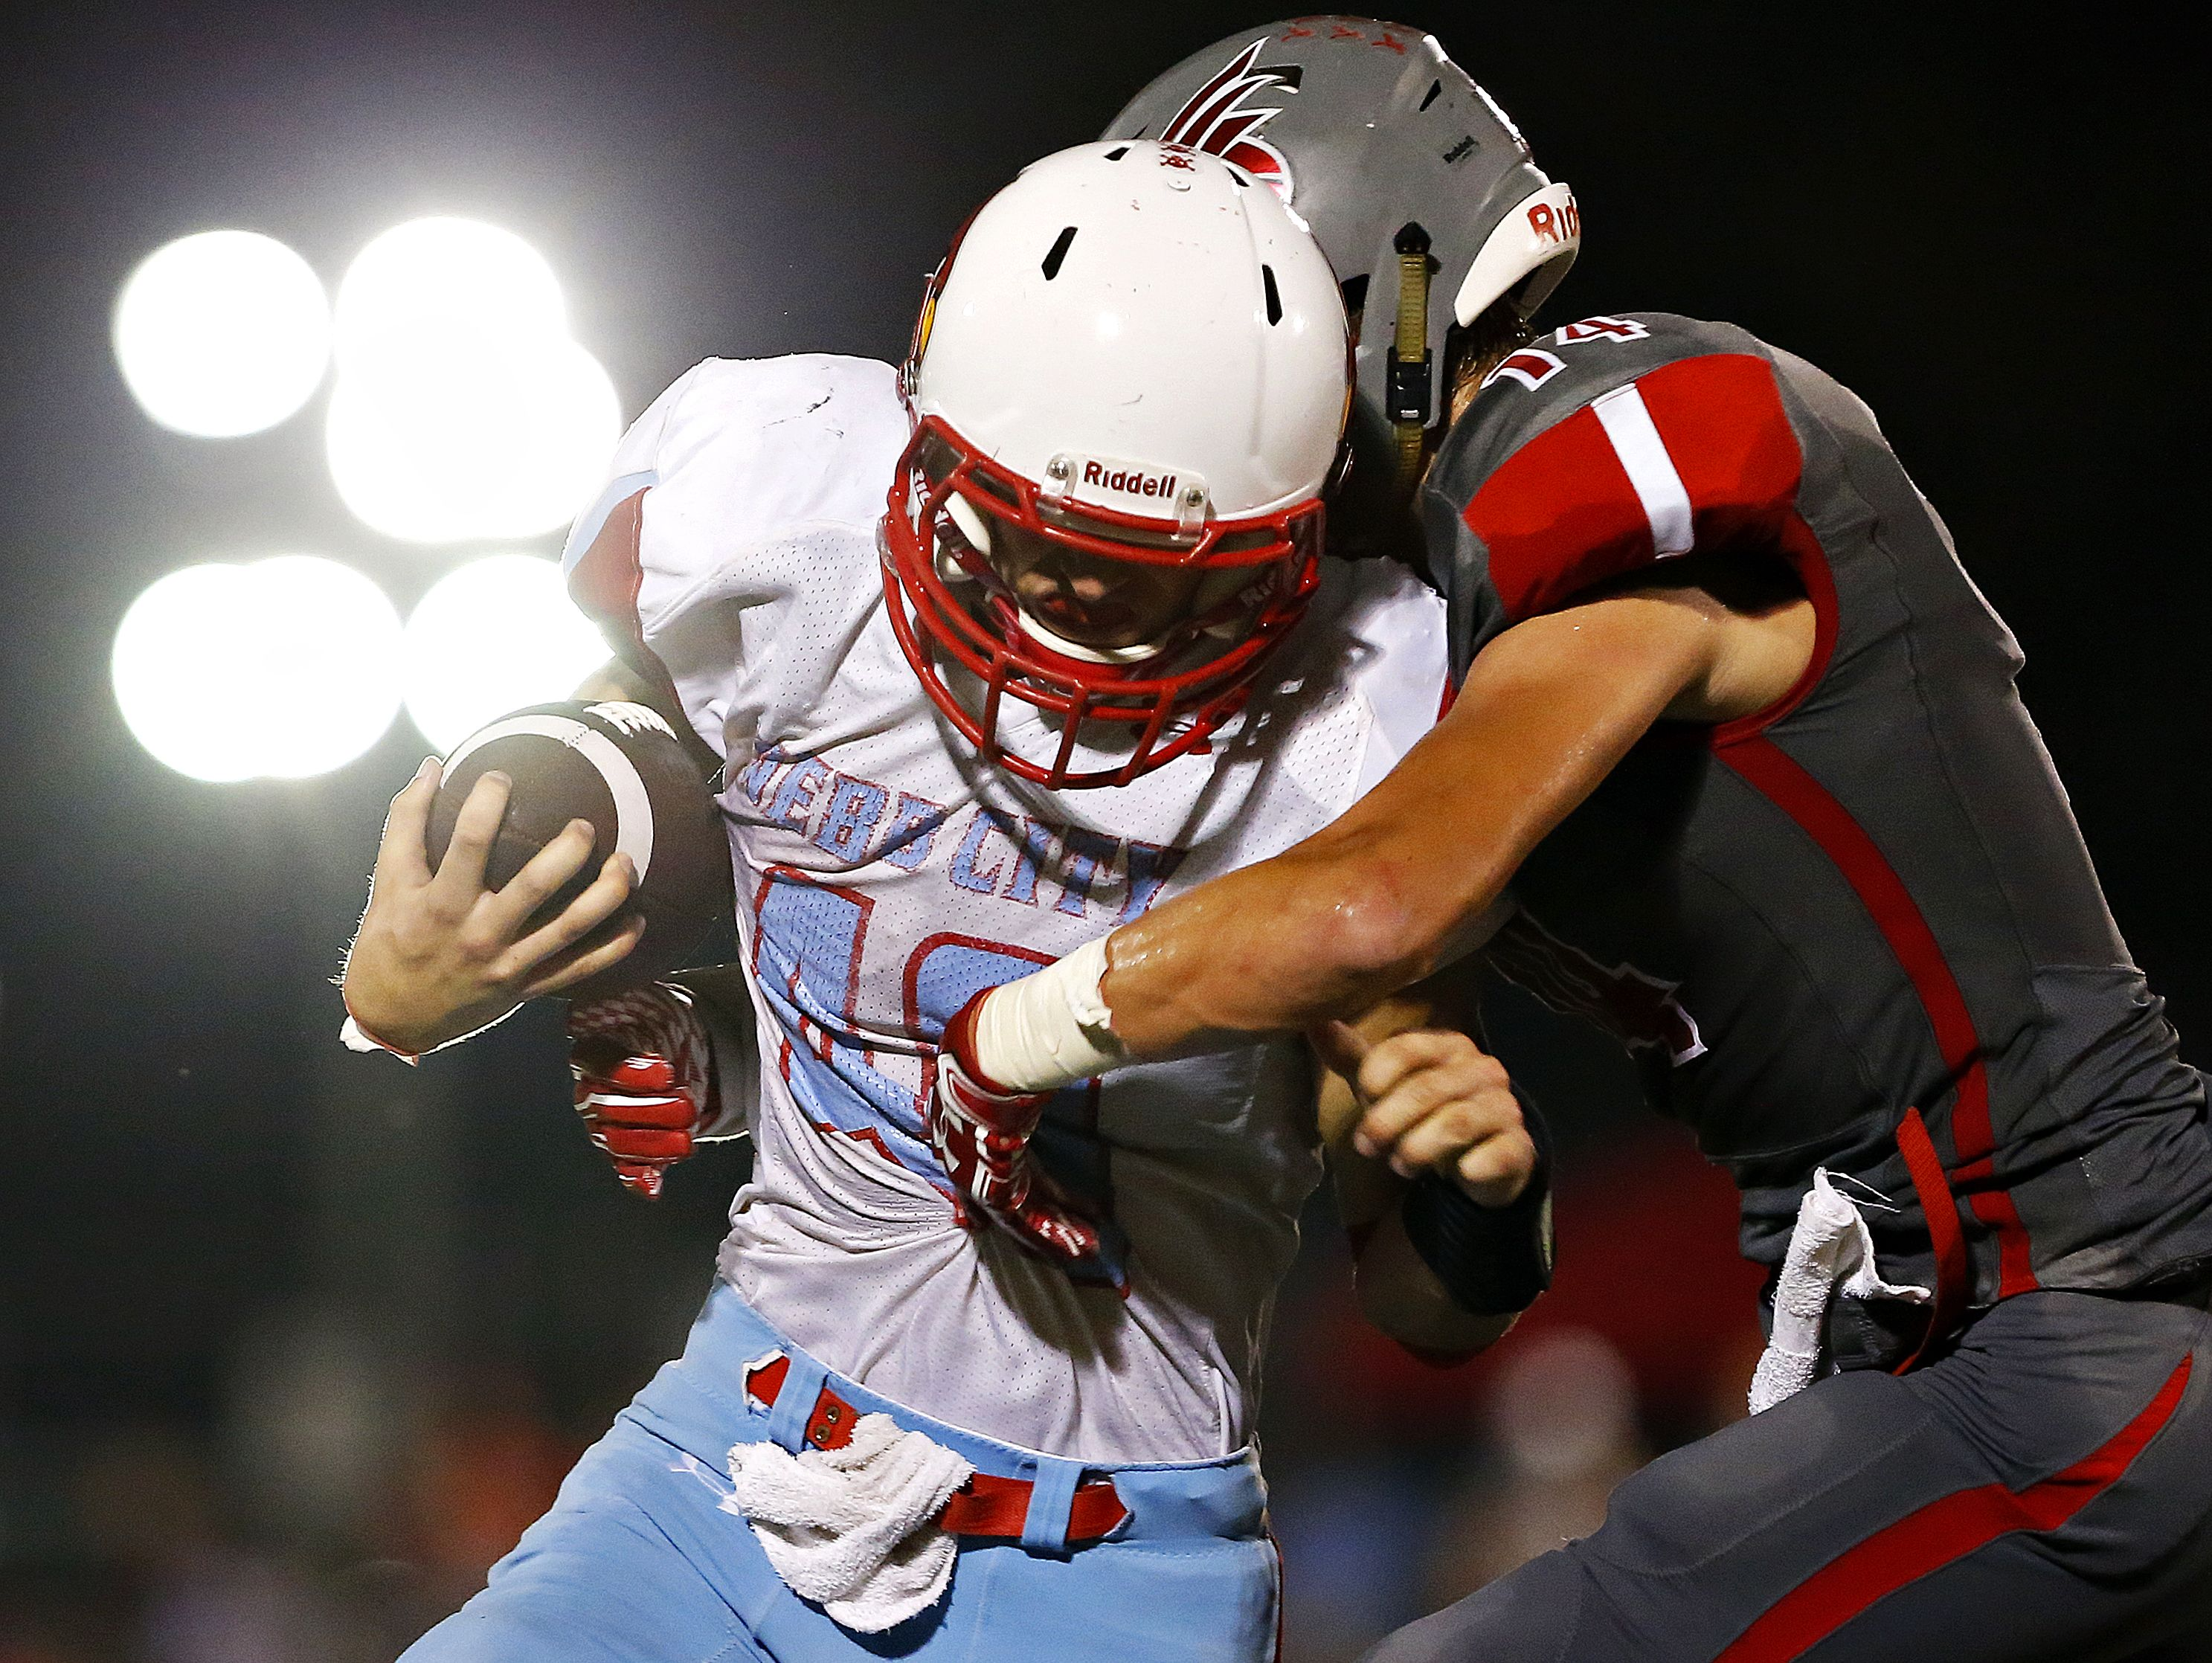 Webb City High School running back Cameron Baker (40) tries to shake off Eagles defensive back Jack Sanders (14) during second quarter action of the football game between Nixa High School and Webb City High School at Eagles Stadium in Nixa, Mo. on Sept. 23, 2016. Webb City won the game 34-10.